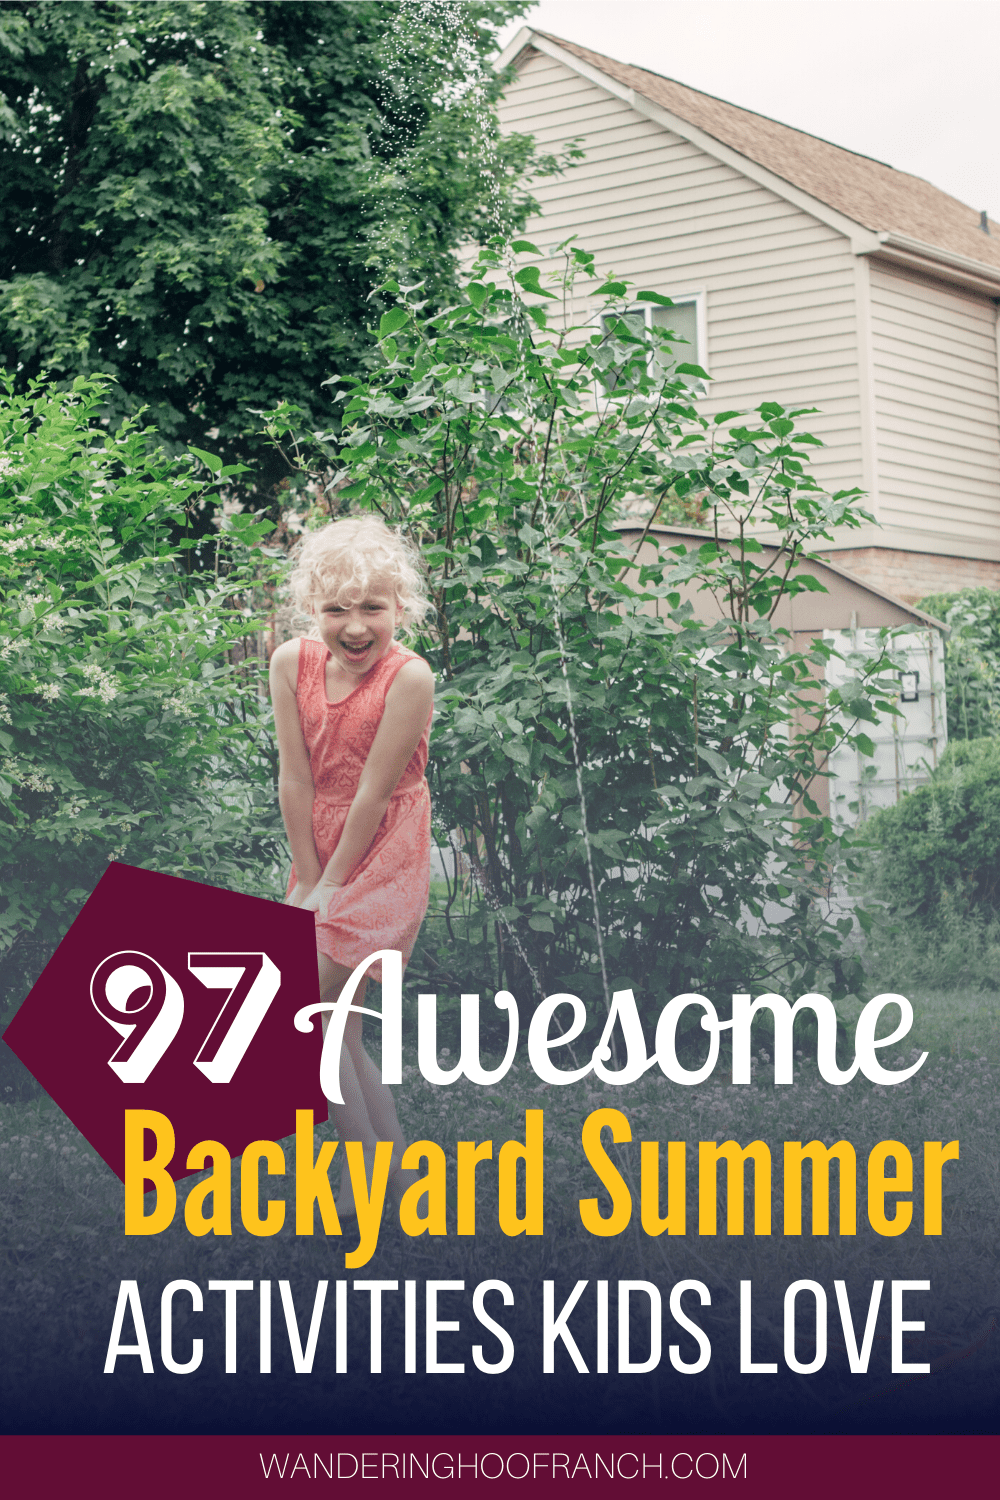 97 Awesome Backyard Summer Activities Kids love pin image